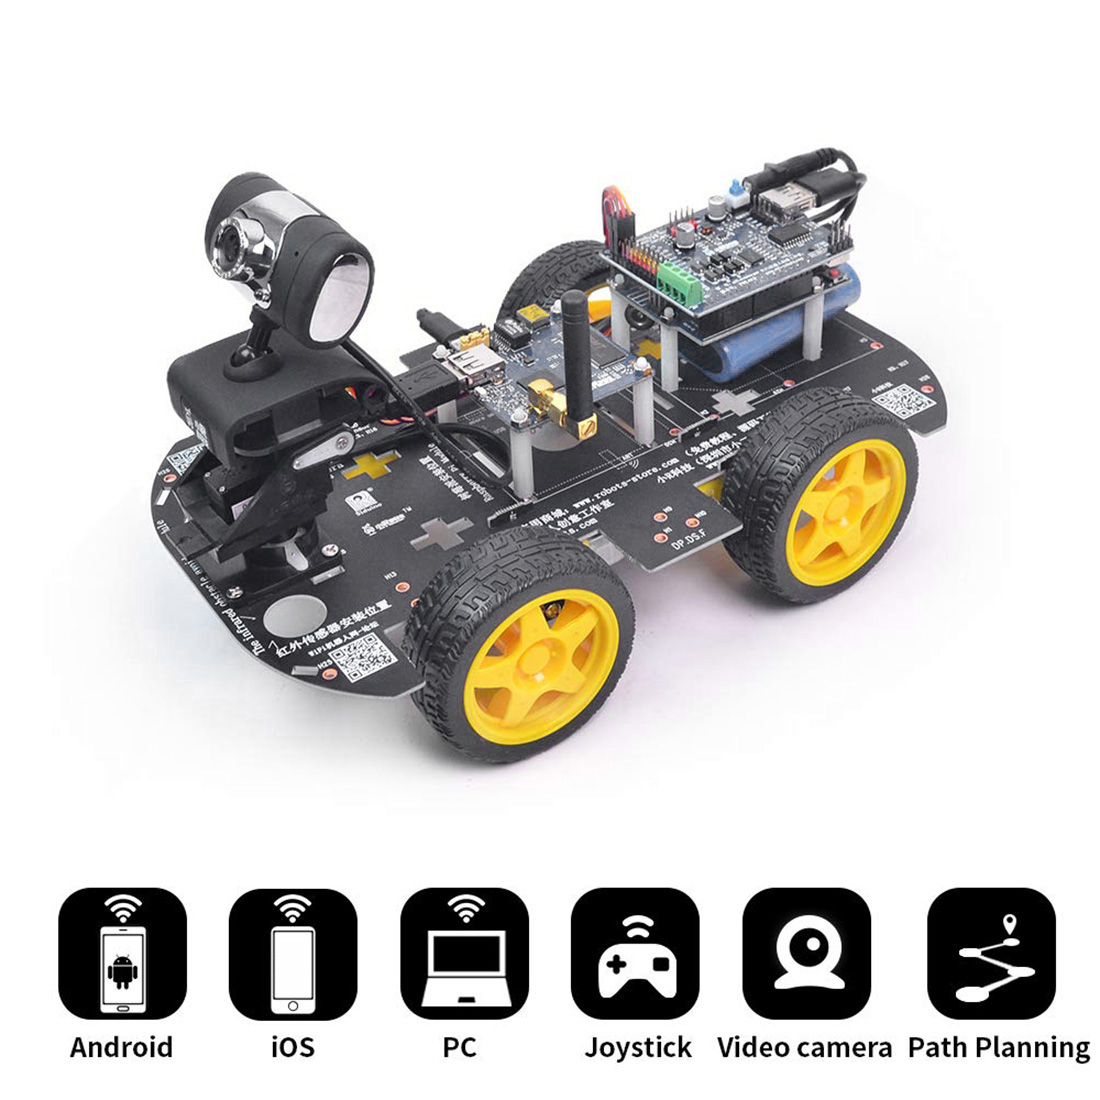 DIY Programmable Robot Car Wifi Steam Educational Car For Raspberry Pi 4 (2G) - Standard Edition US Plug